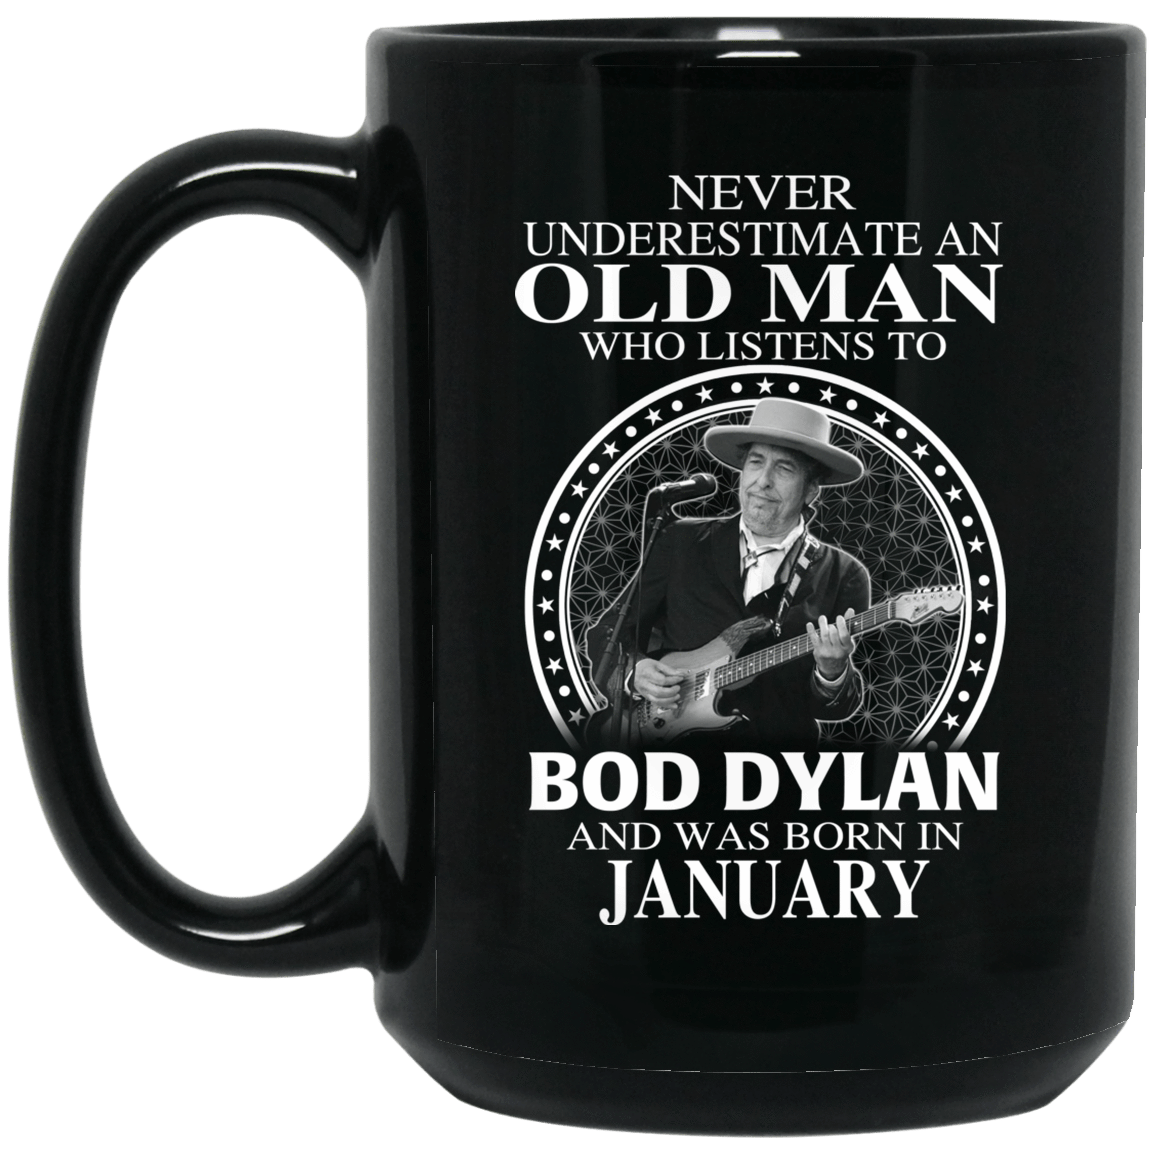 An Old Man Who Listens To Bob Dylan And Was Born In January Mug 1066-10182-76154396-49311 - Tee Ript